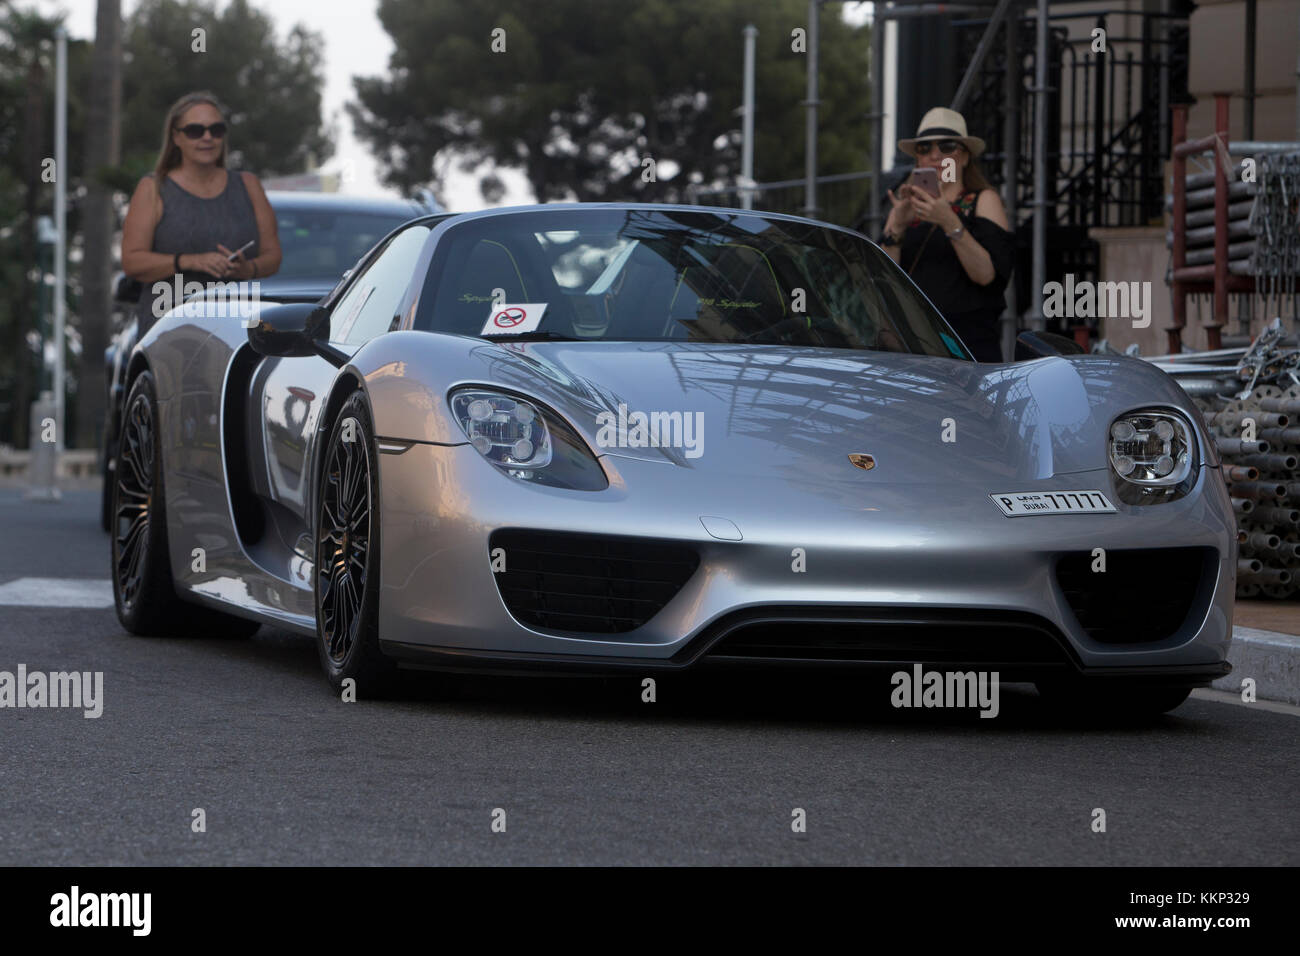 porsche 918 spyder stock photos porsche 918 spyder stock. Black Bedroom Furniture Sets. Home Design Ideas